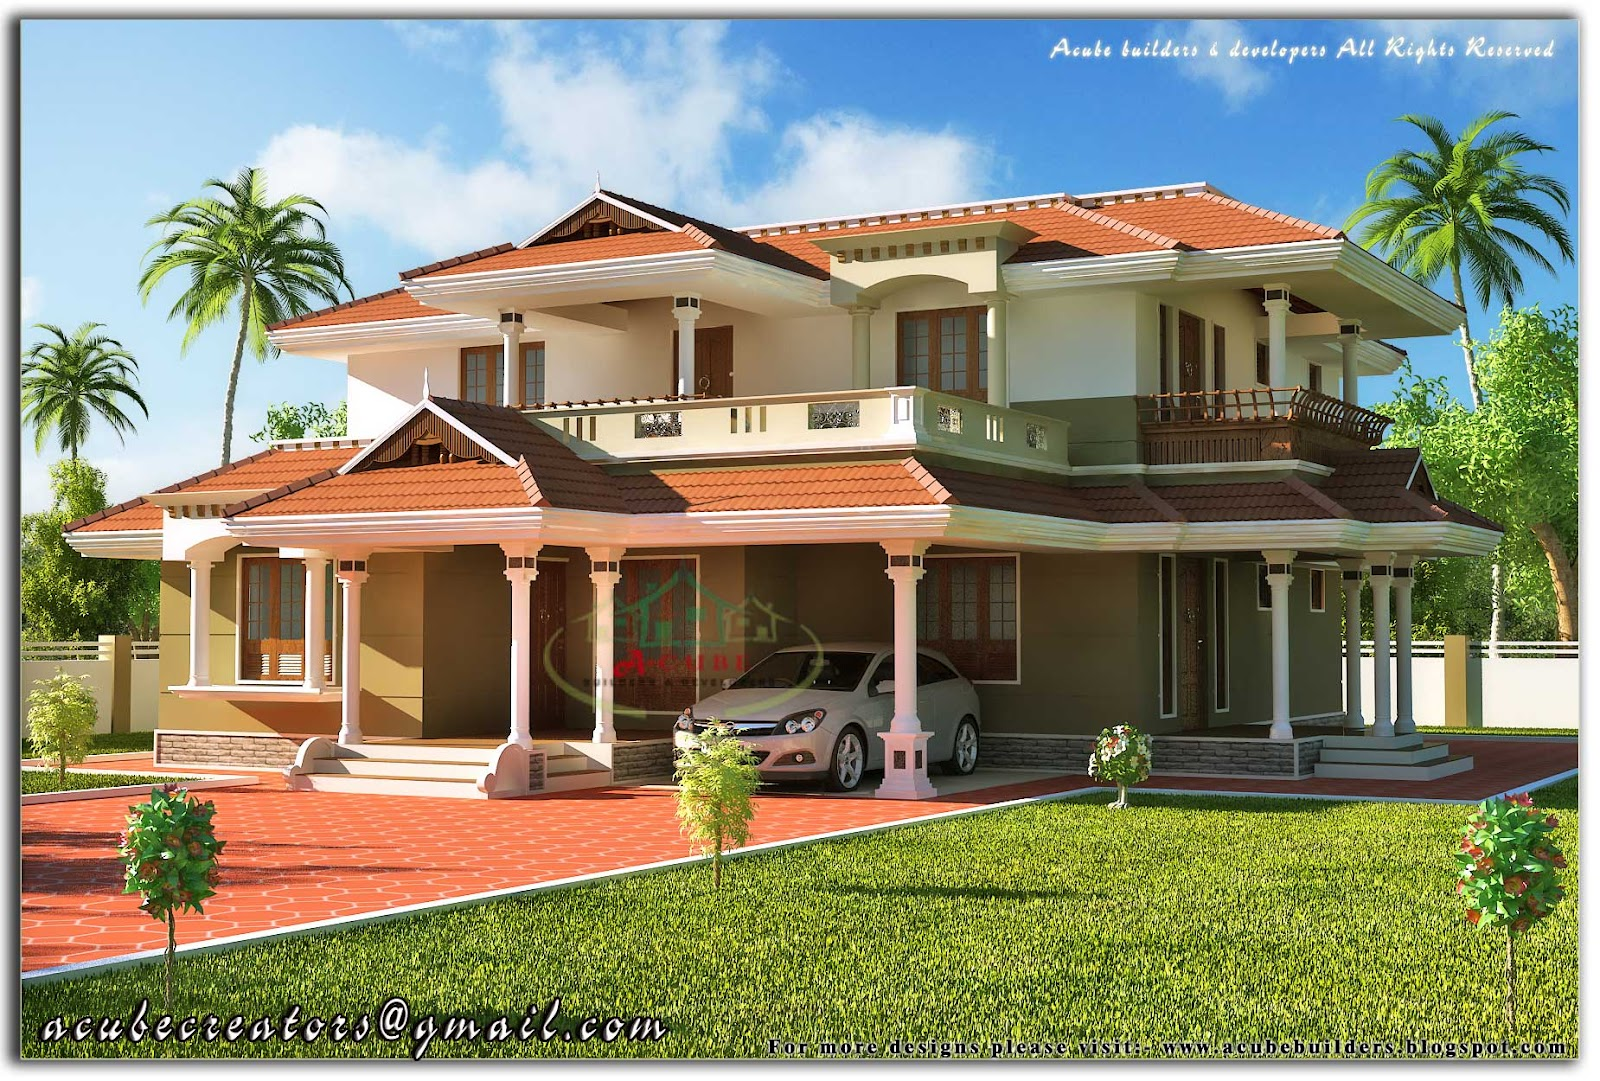 Veedu model joy studio design gallery best design for Kerala veedu design